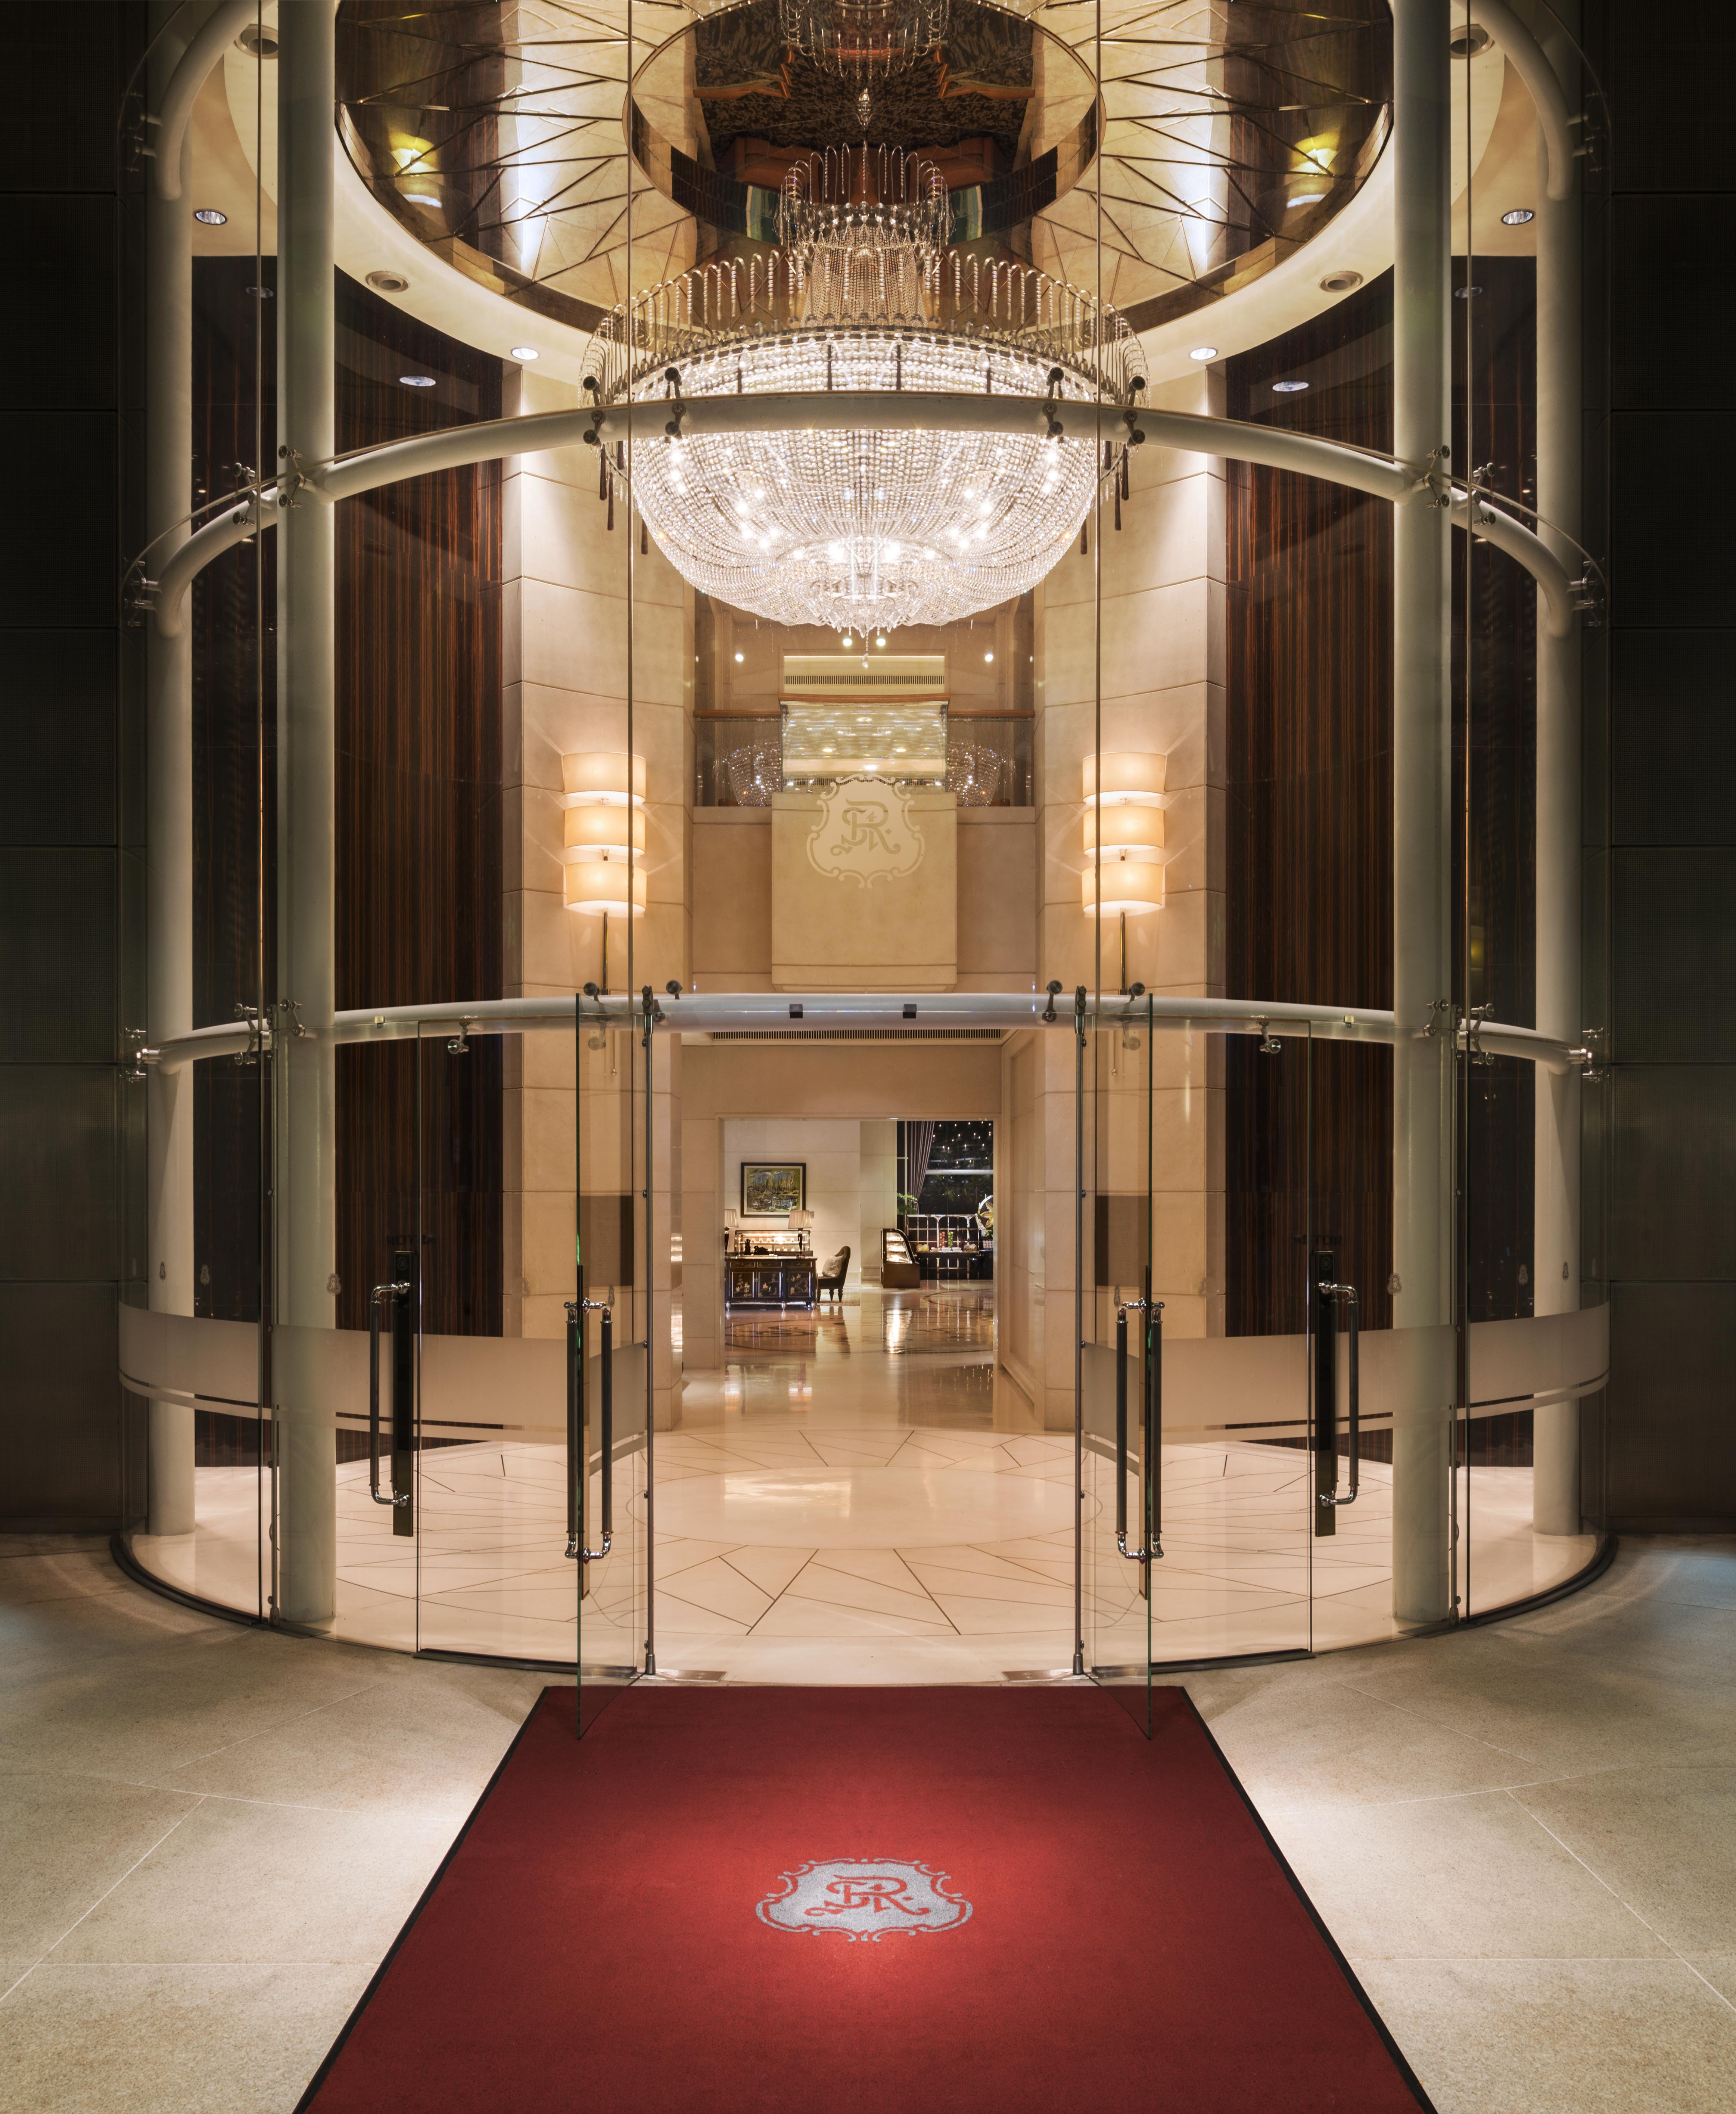 St. Regis: Luxus pur in Singapur | Isa Trends Blog